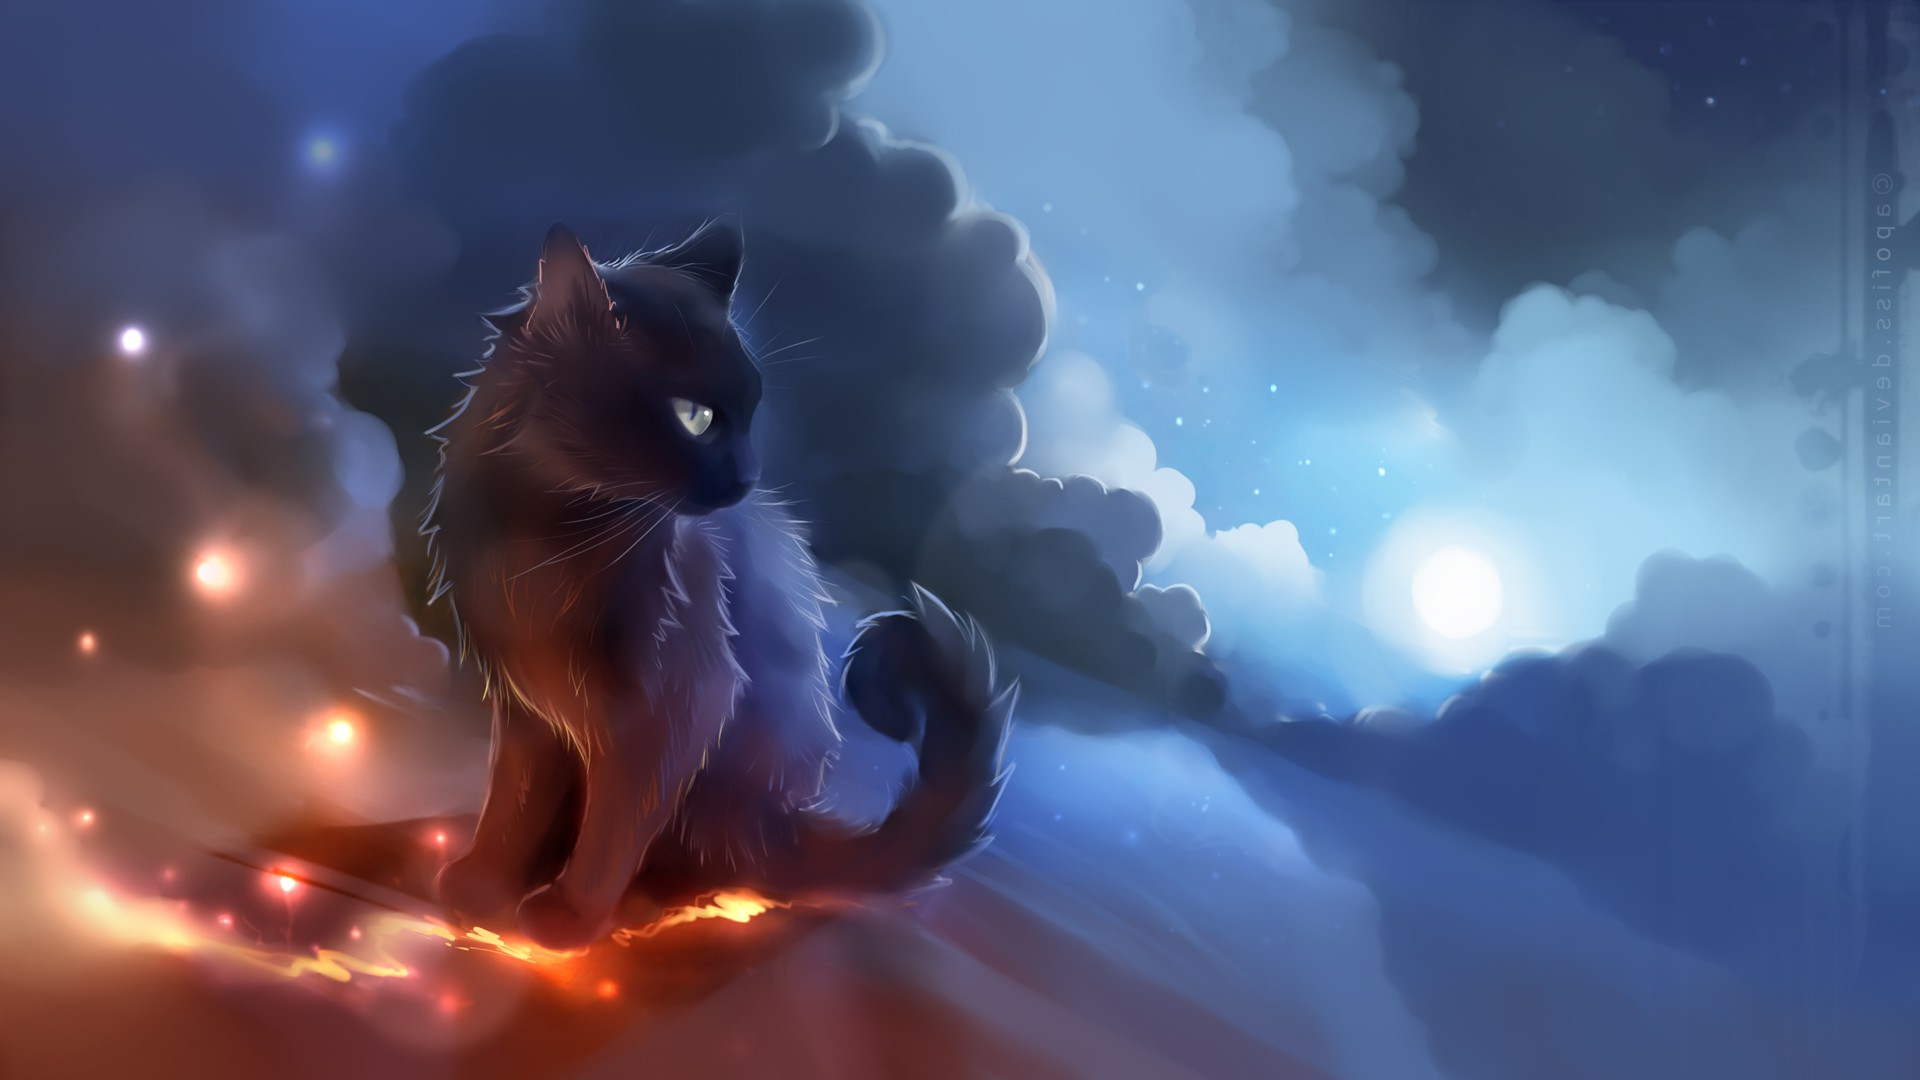 Artwork, Cat, Anime, Glowing, Clouds, Apofiss Wallpapers